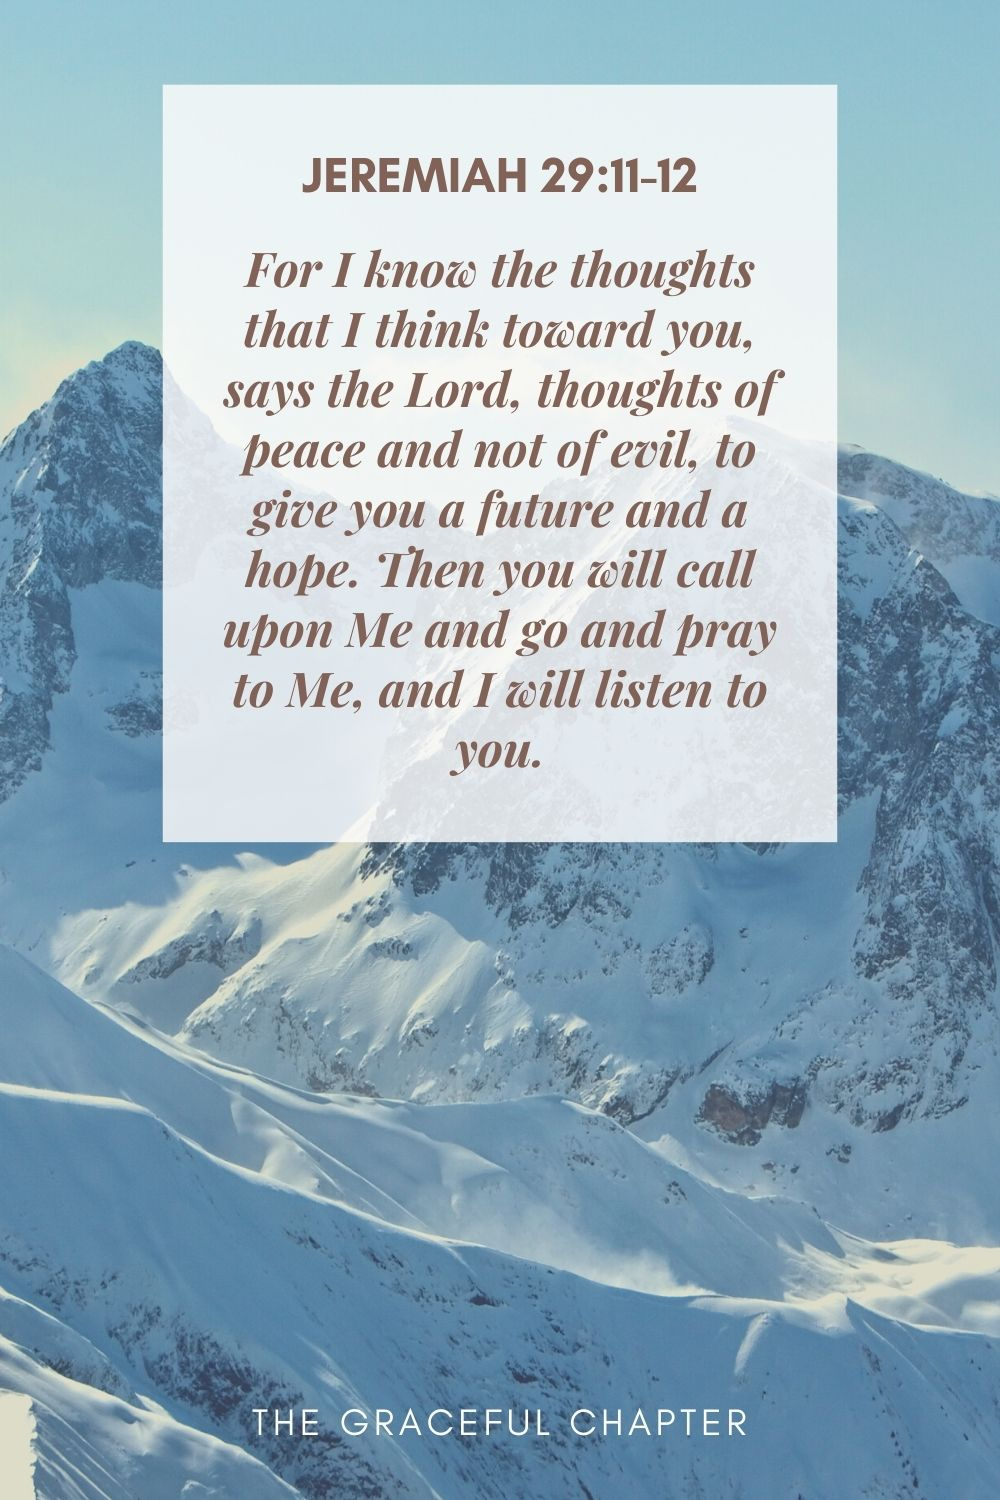 For I know the thoughts that I think toward you, says the Lord, thoughts of peace and not of evil, to give you a future and a hope. Then you will call upon Me and go and pray to Me, and I will listen to you. Jeremiah 29:11-12